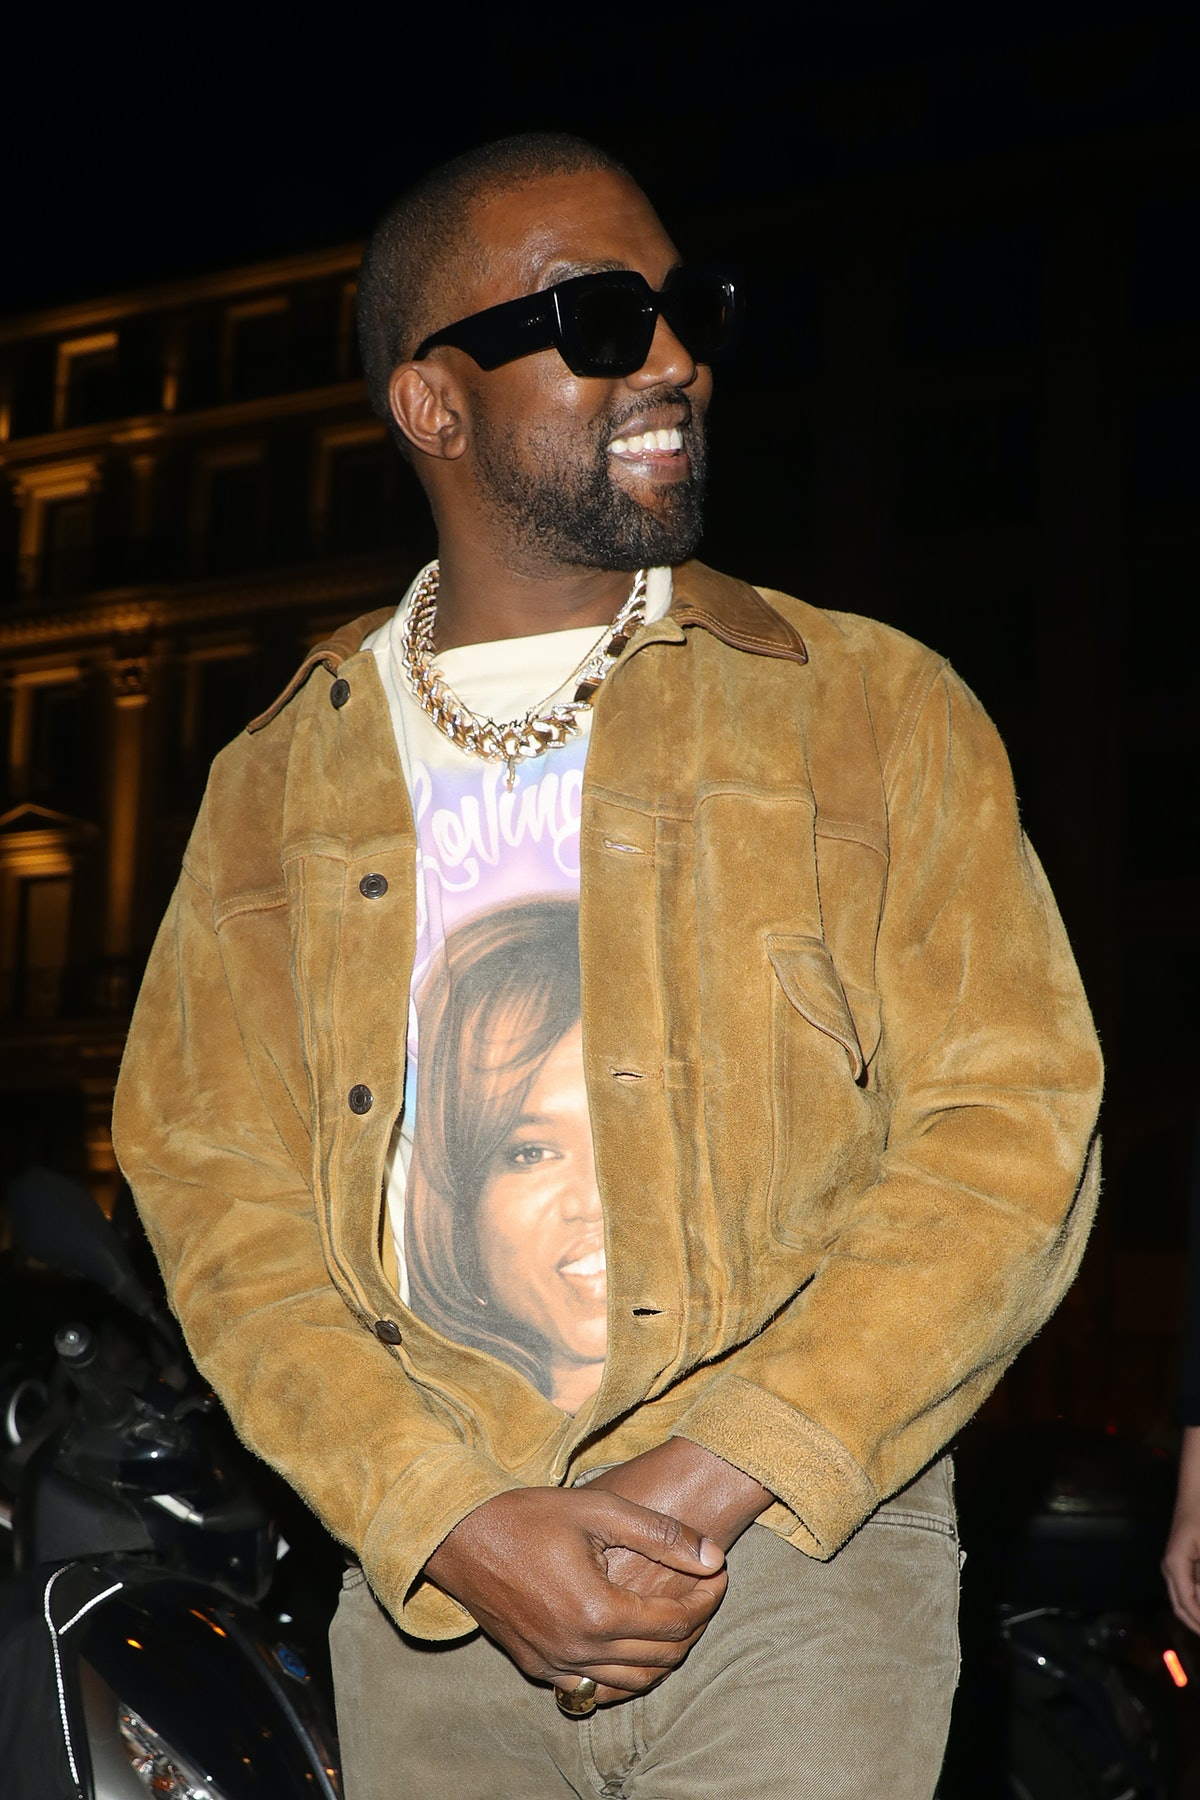 Kanye West steps out in a suede jacket and black shades.